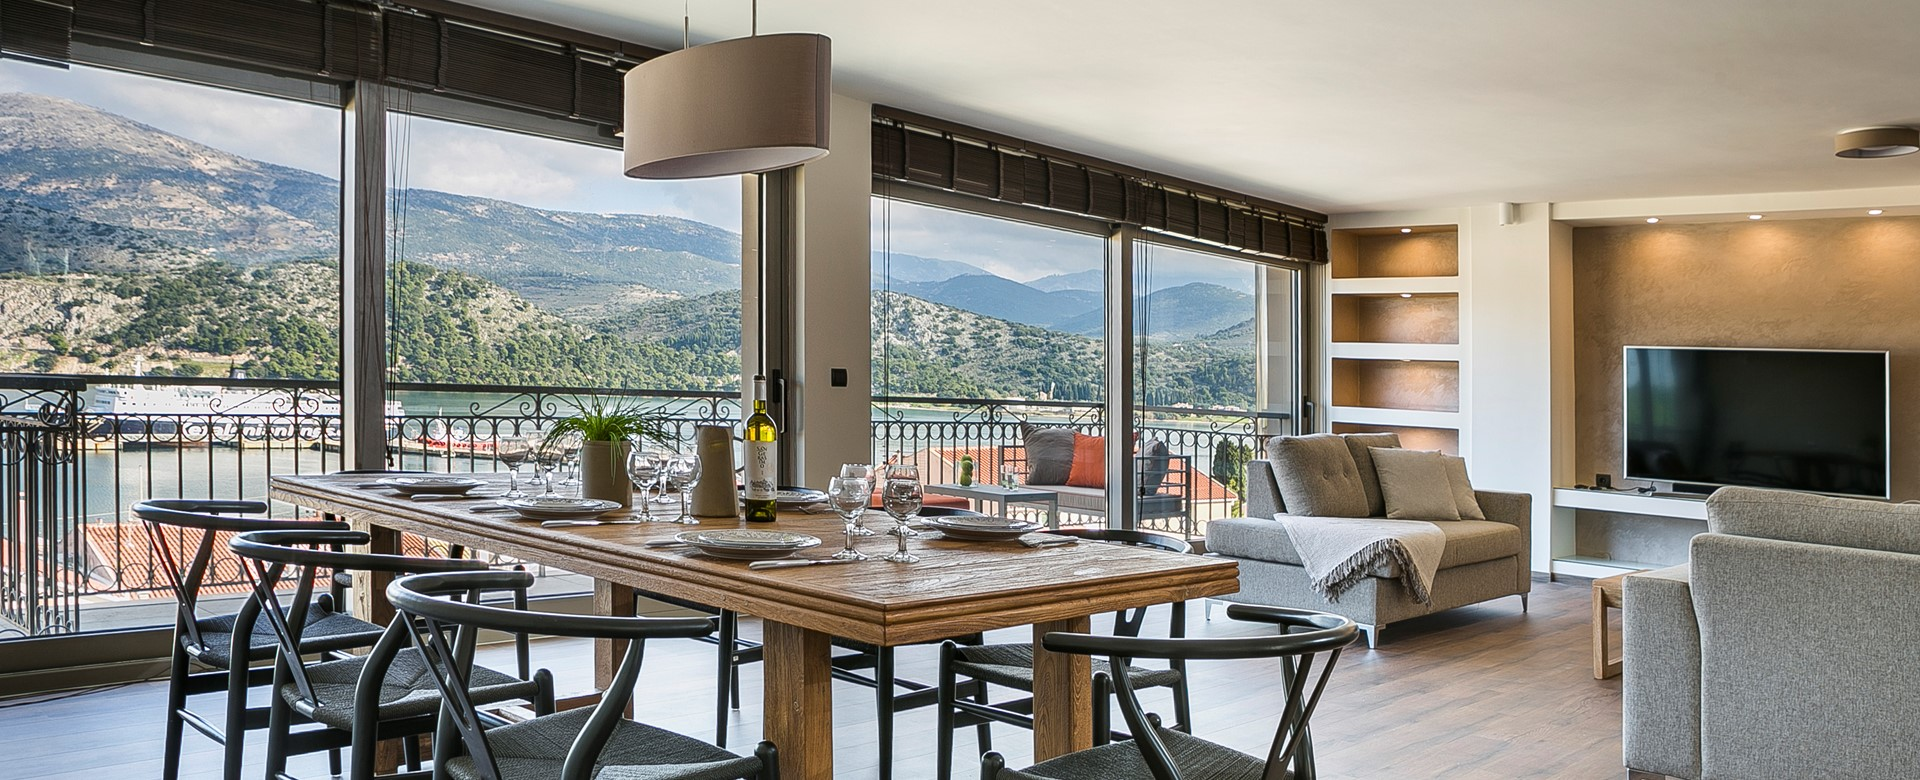 Plenty of room for enjoying dinner and drinks around the table inside Marina Penthouse Apartment, Argostoli, Kefalonia, Greek Islands